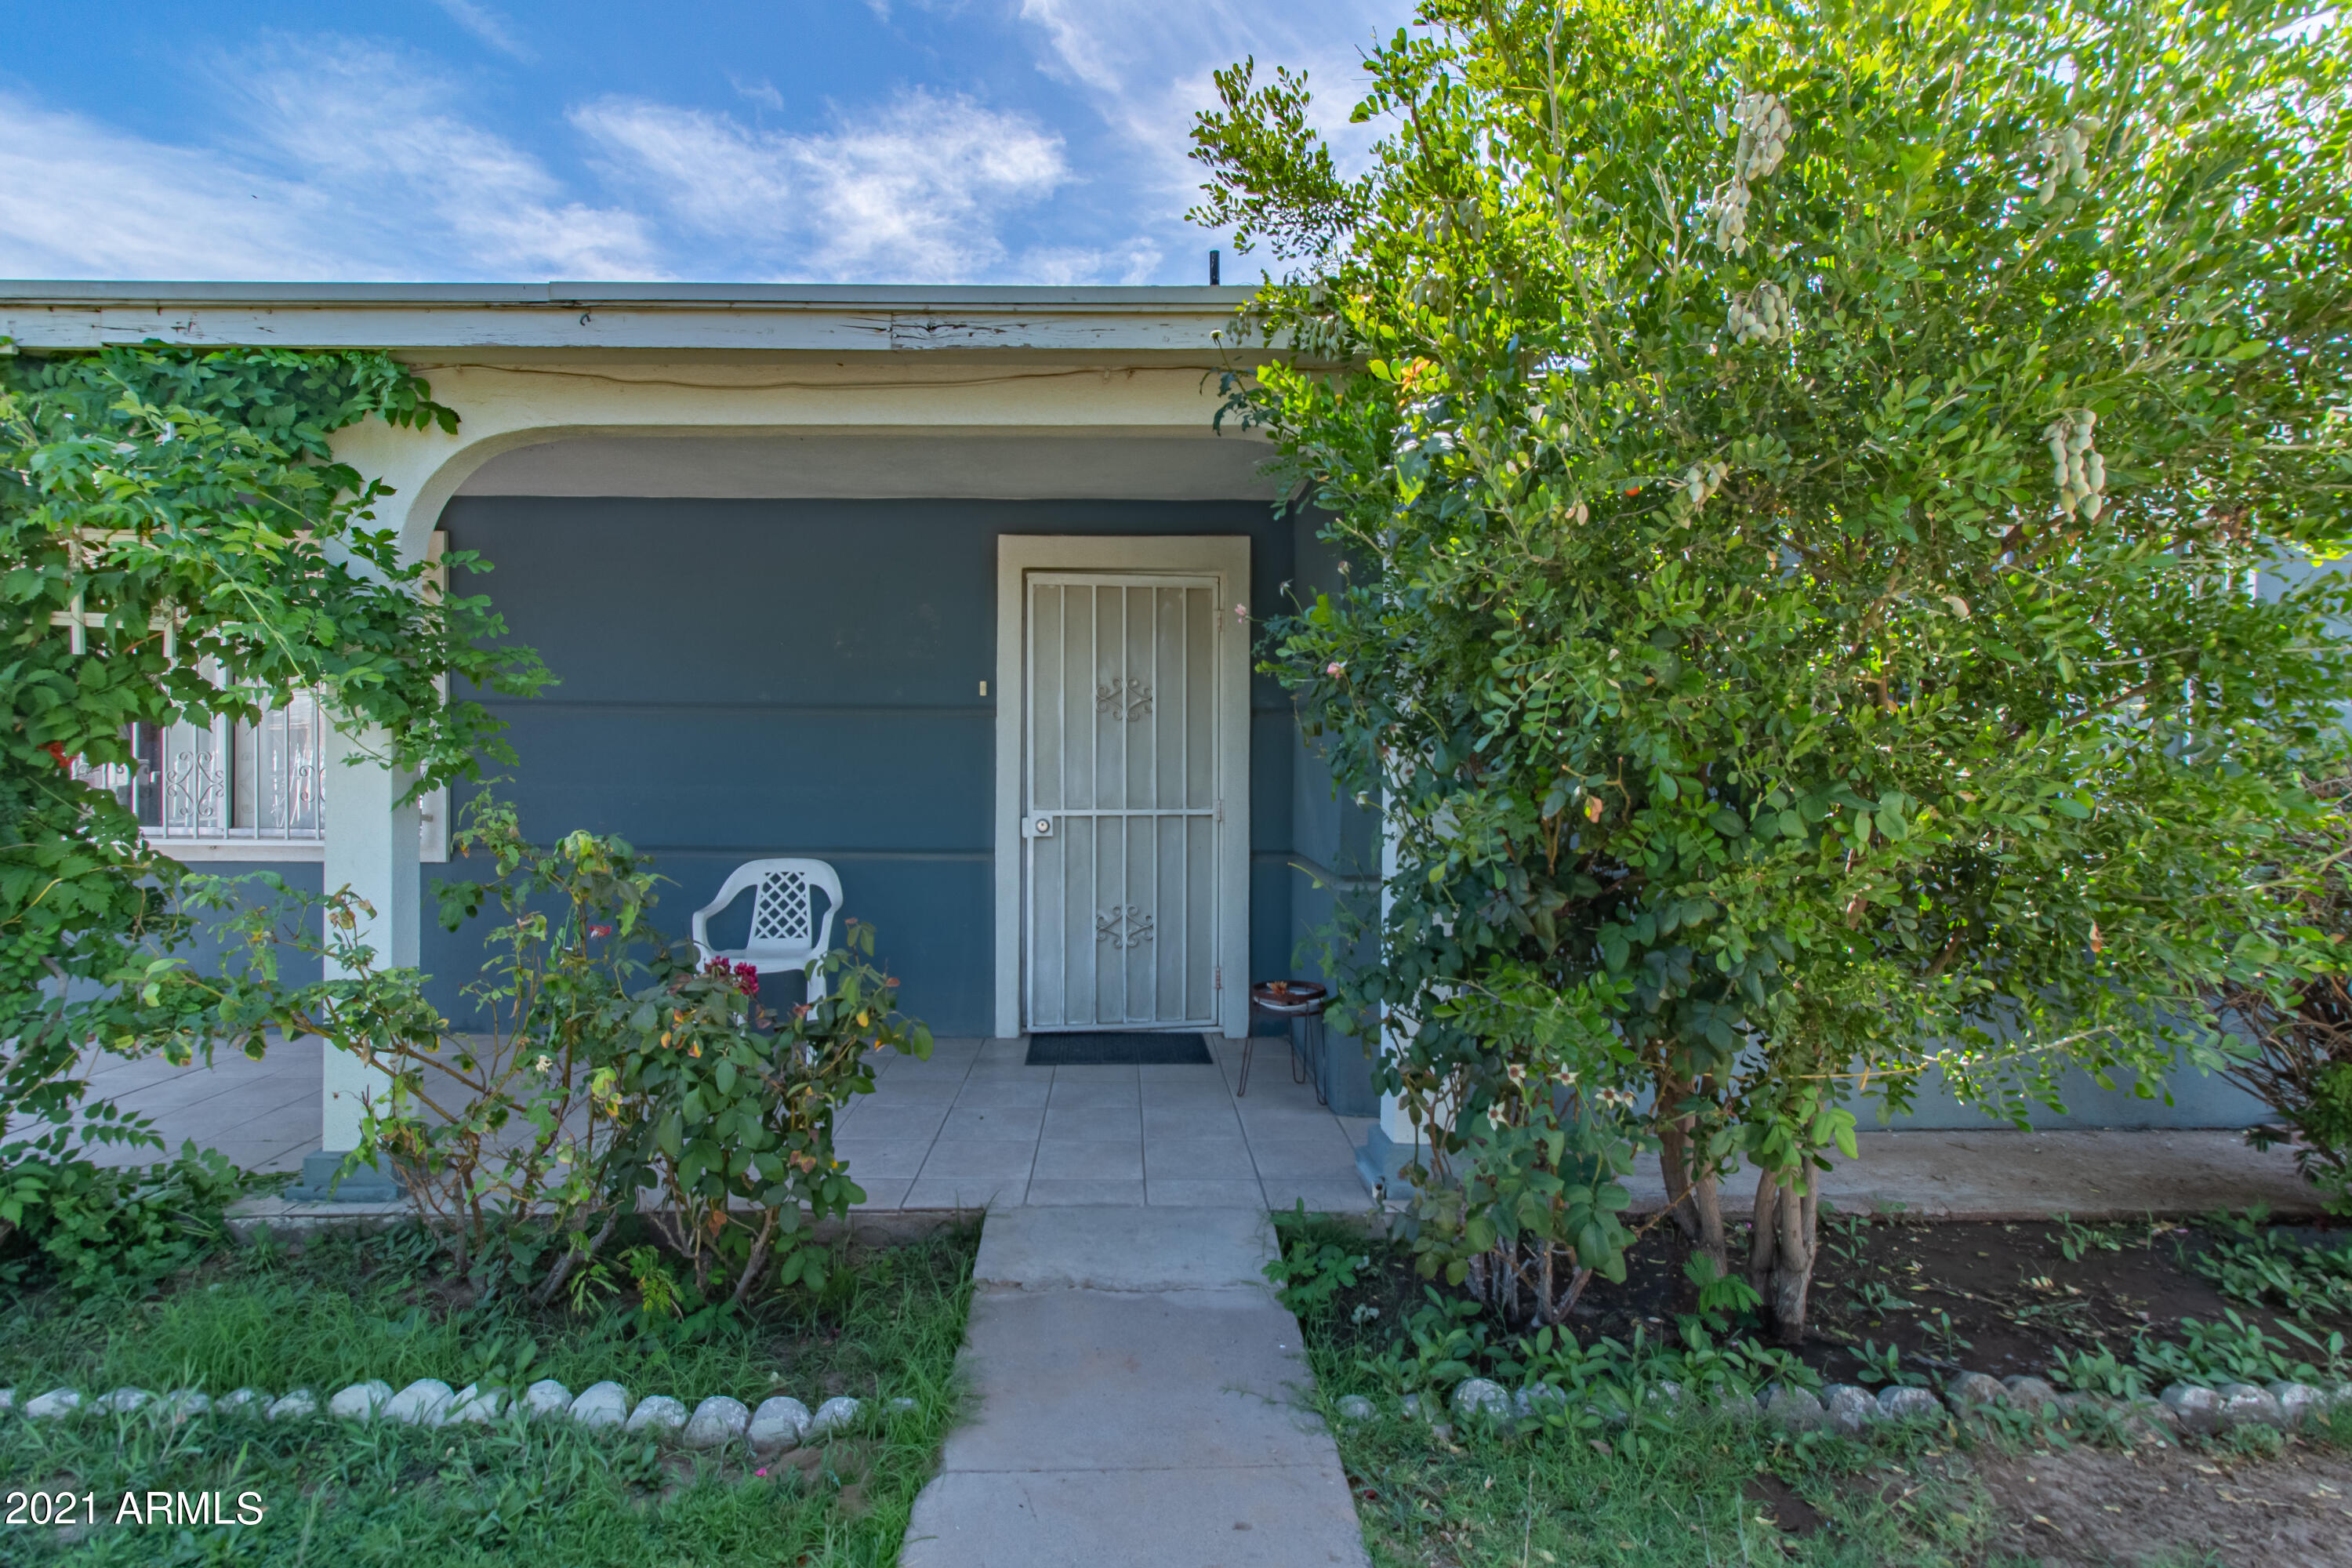 6006 S 5TH Avenue, Phoenix, AZ 85041, 3 Bedrooms Bedrooms, ,Residential,For Sale,6006 S 5TH Avenue,6249233